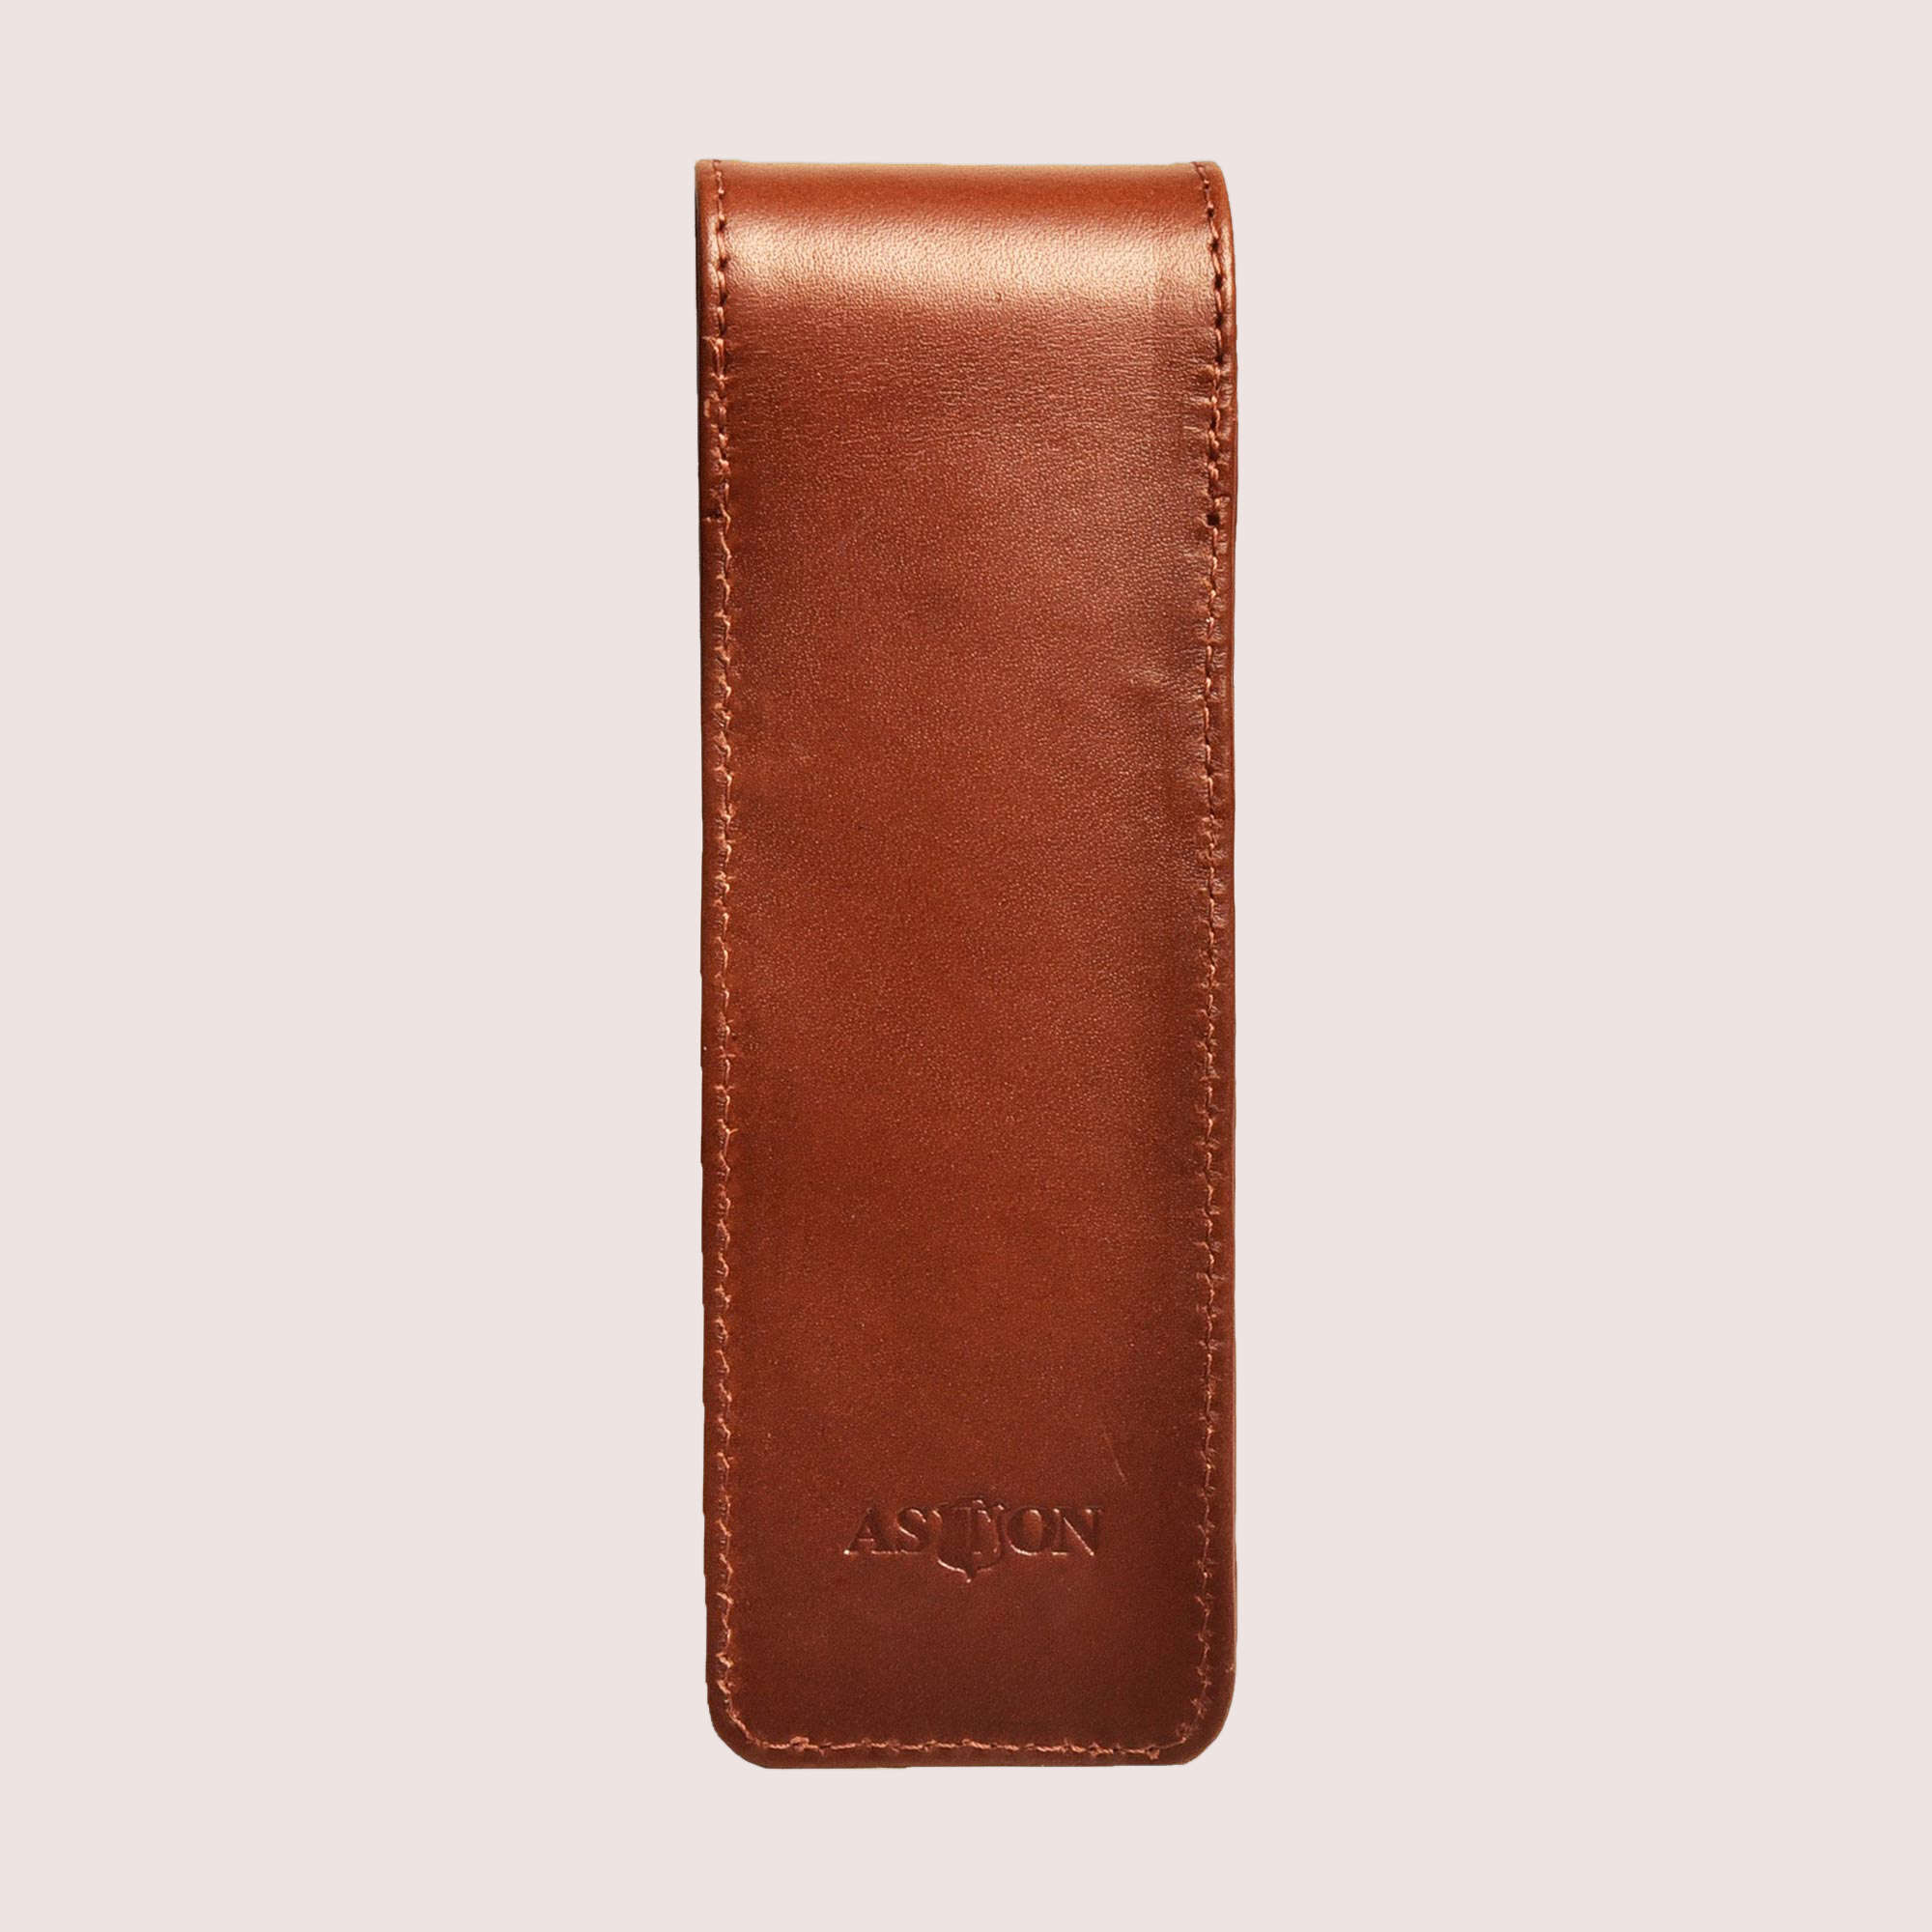 Two Pen Leather Case